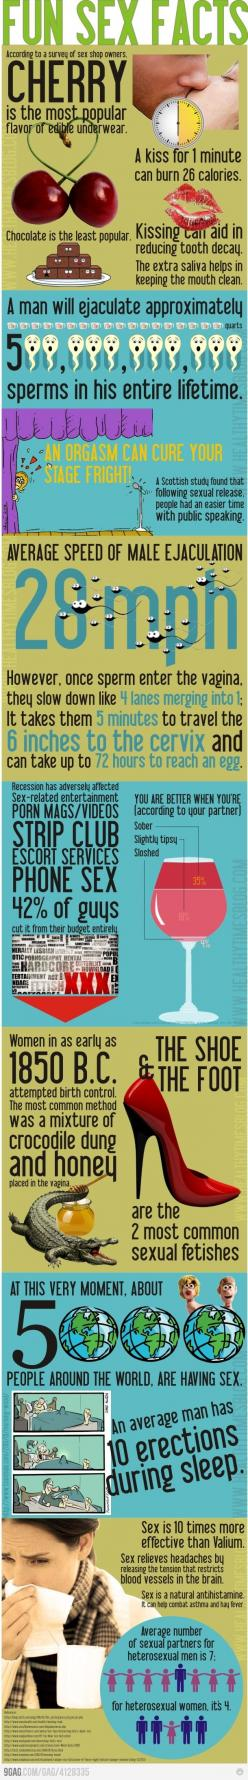 Fun sex facts!: Funfacts Sexfacts, Fun Sexy, Life, Fun Scary Facts Stories, Funny Facts, Sexy Facts, Fun Facts, Infographics, Fun Sex Facts Jpg